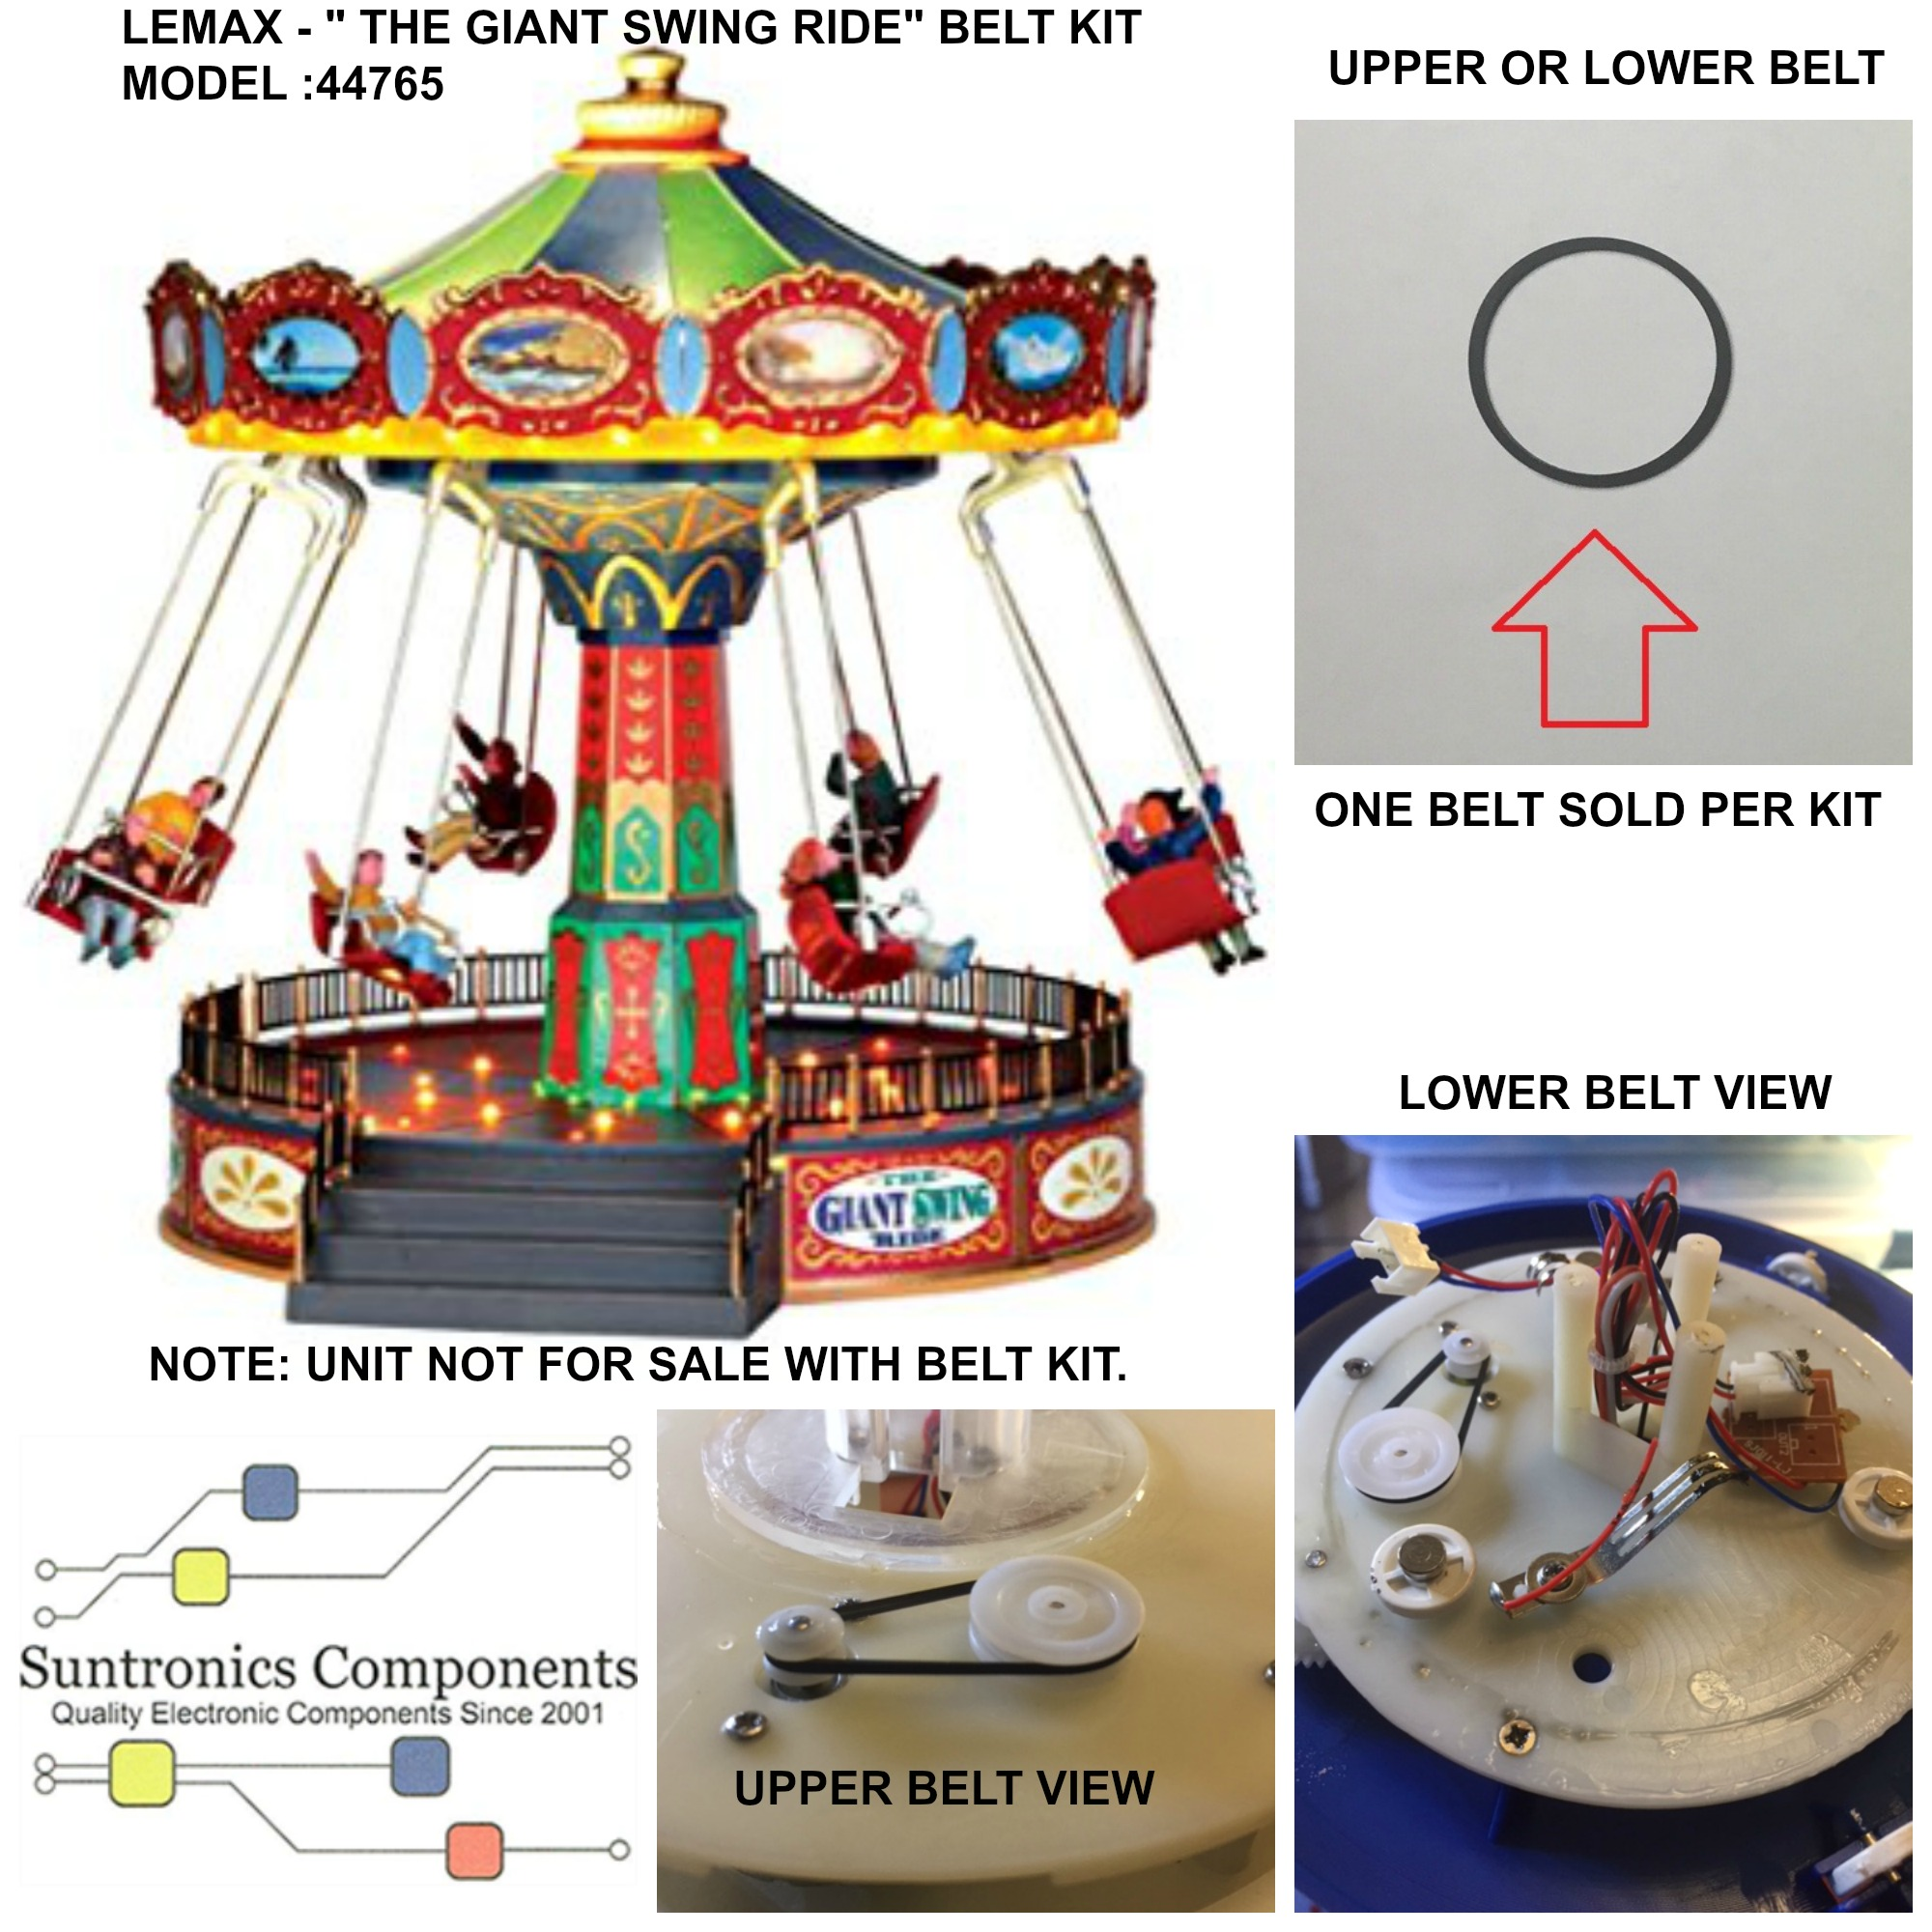 PicMonkey ImageLEMAX THE GIANT SWING RIDE MODEL 44765 BELT KIT.JPG